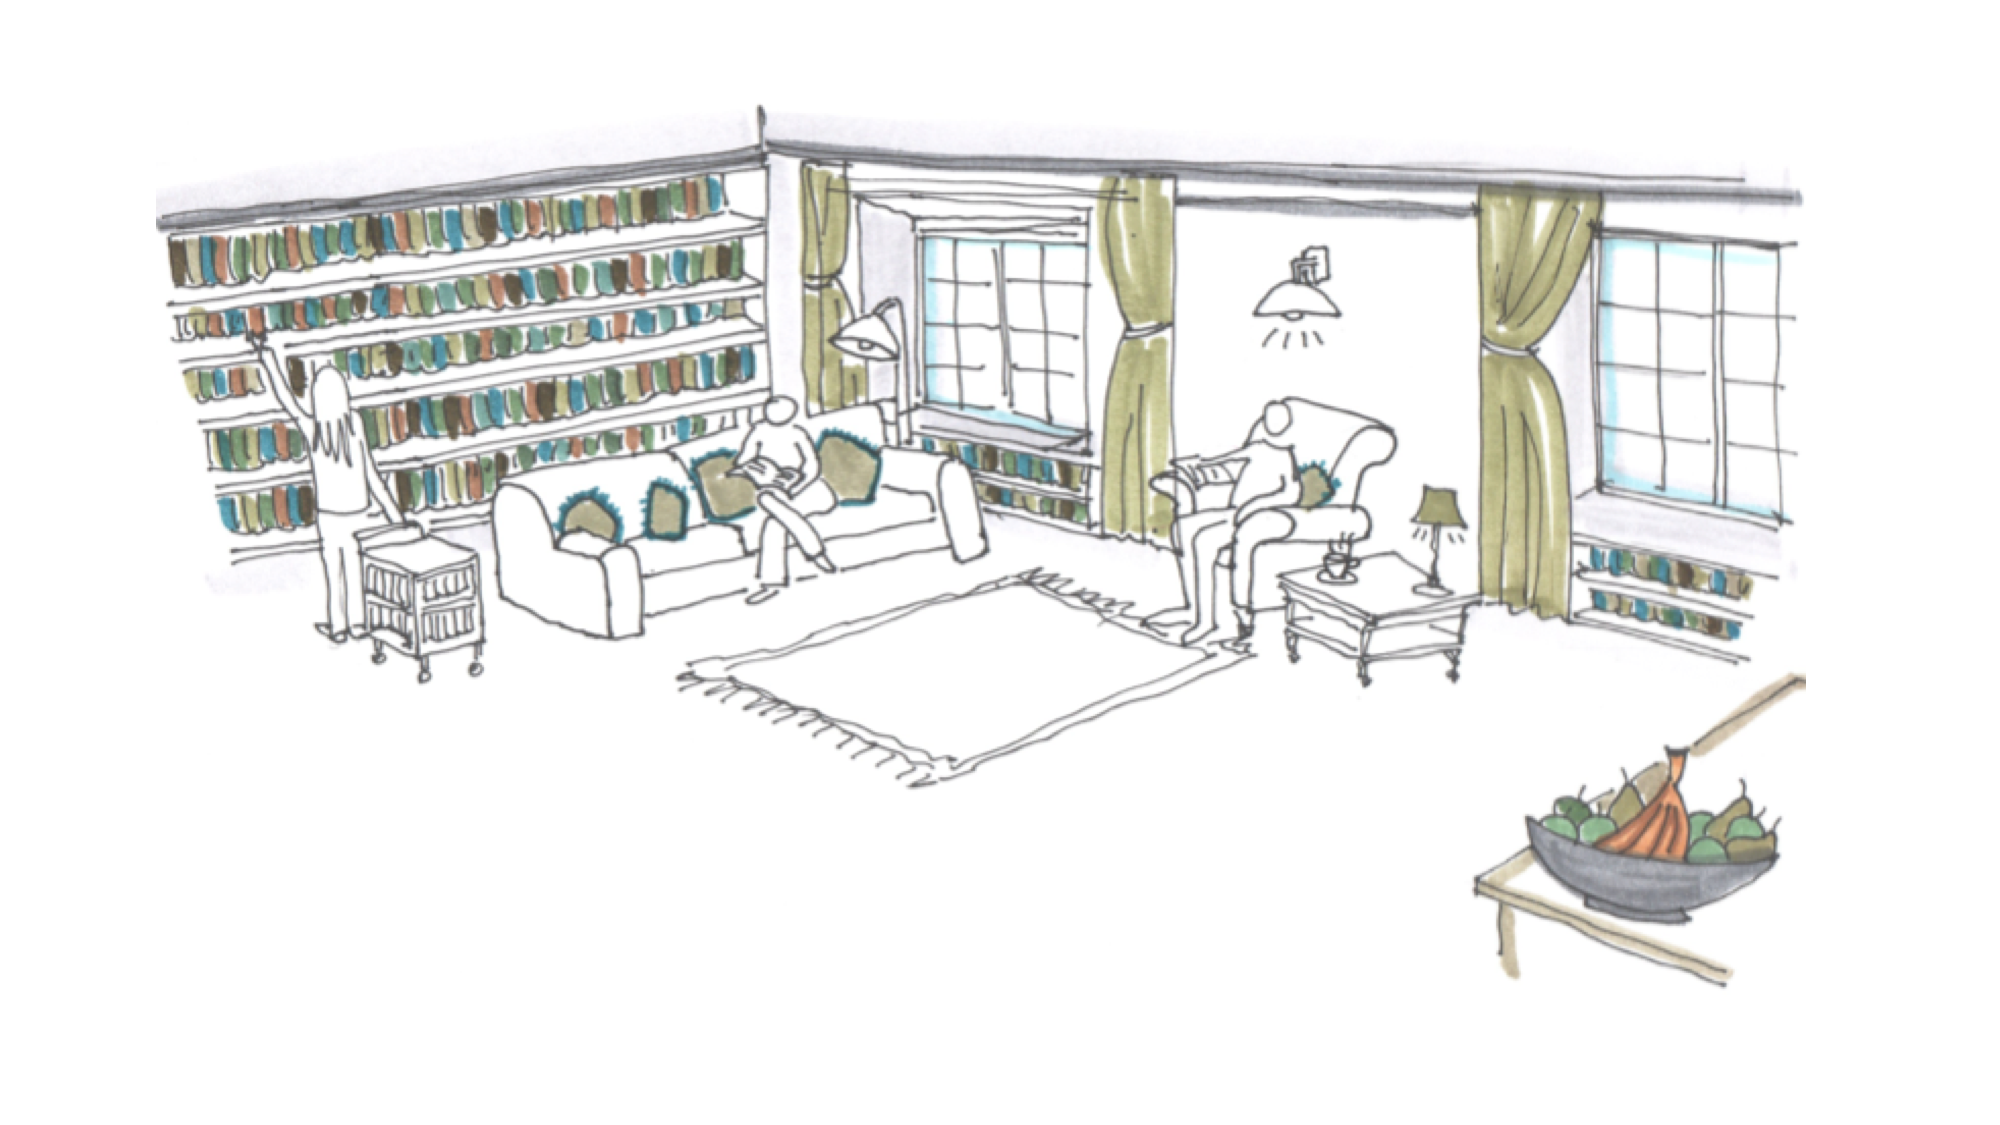 Hand drawn sketch of a small low intensity work space, with sofas, book shelves and rugs, and people reading inside